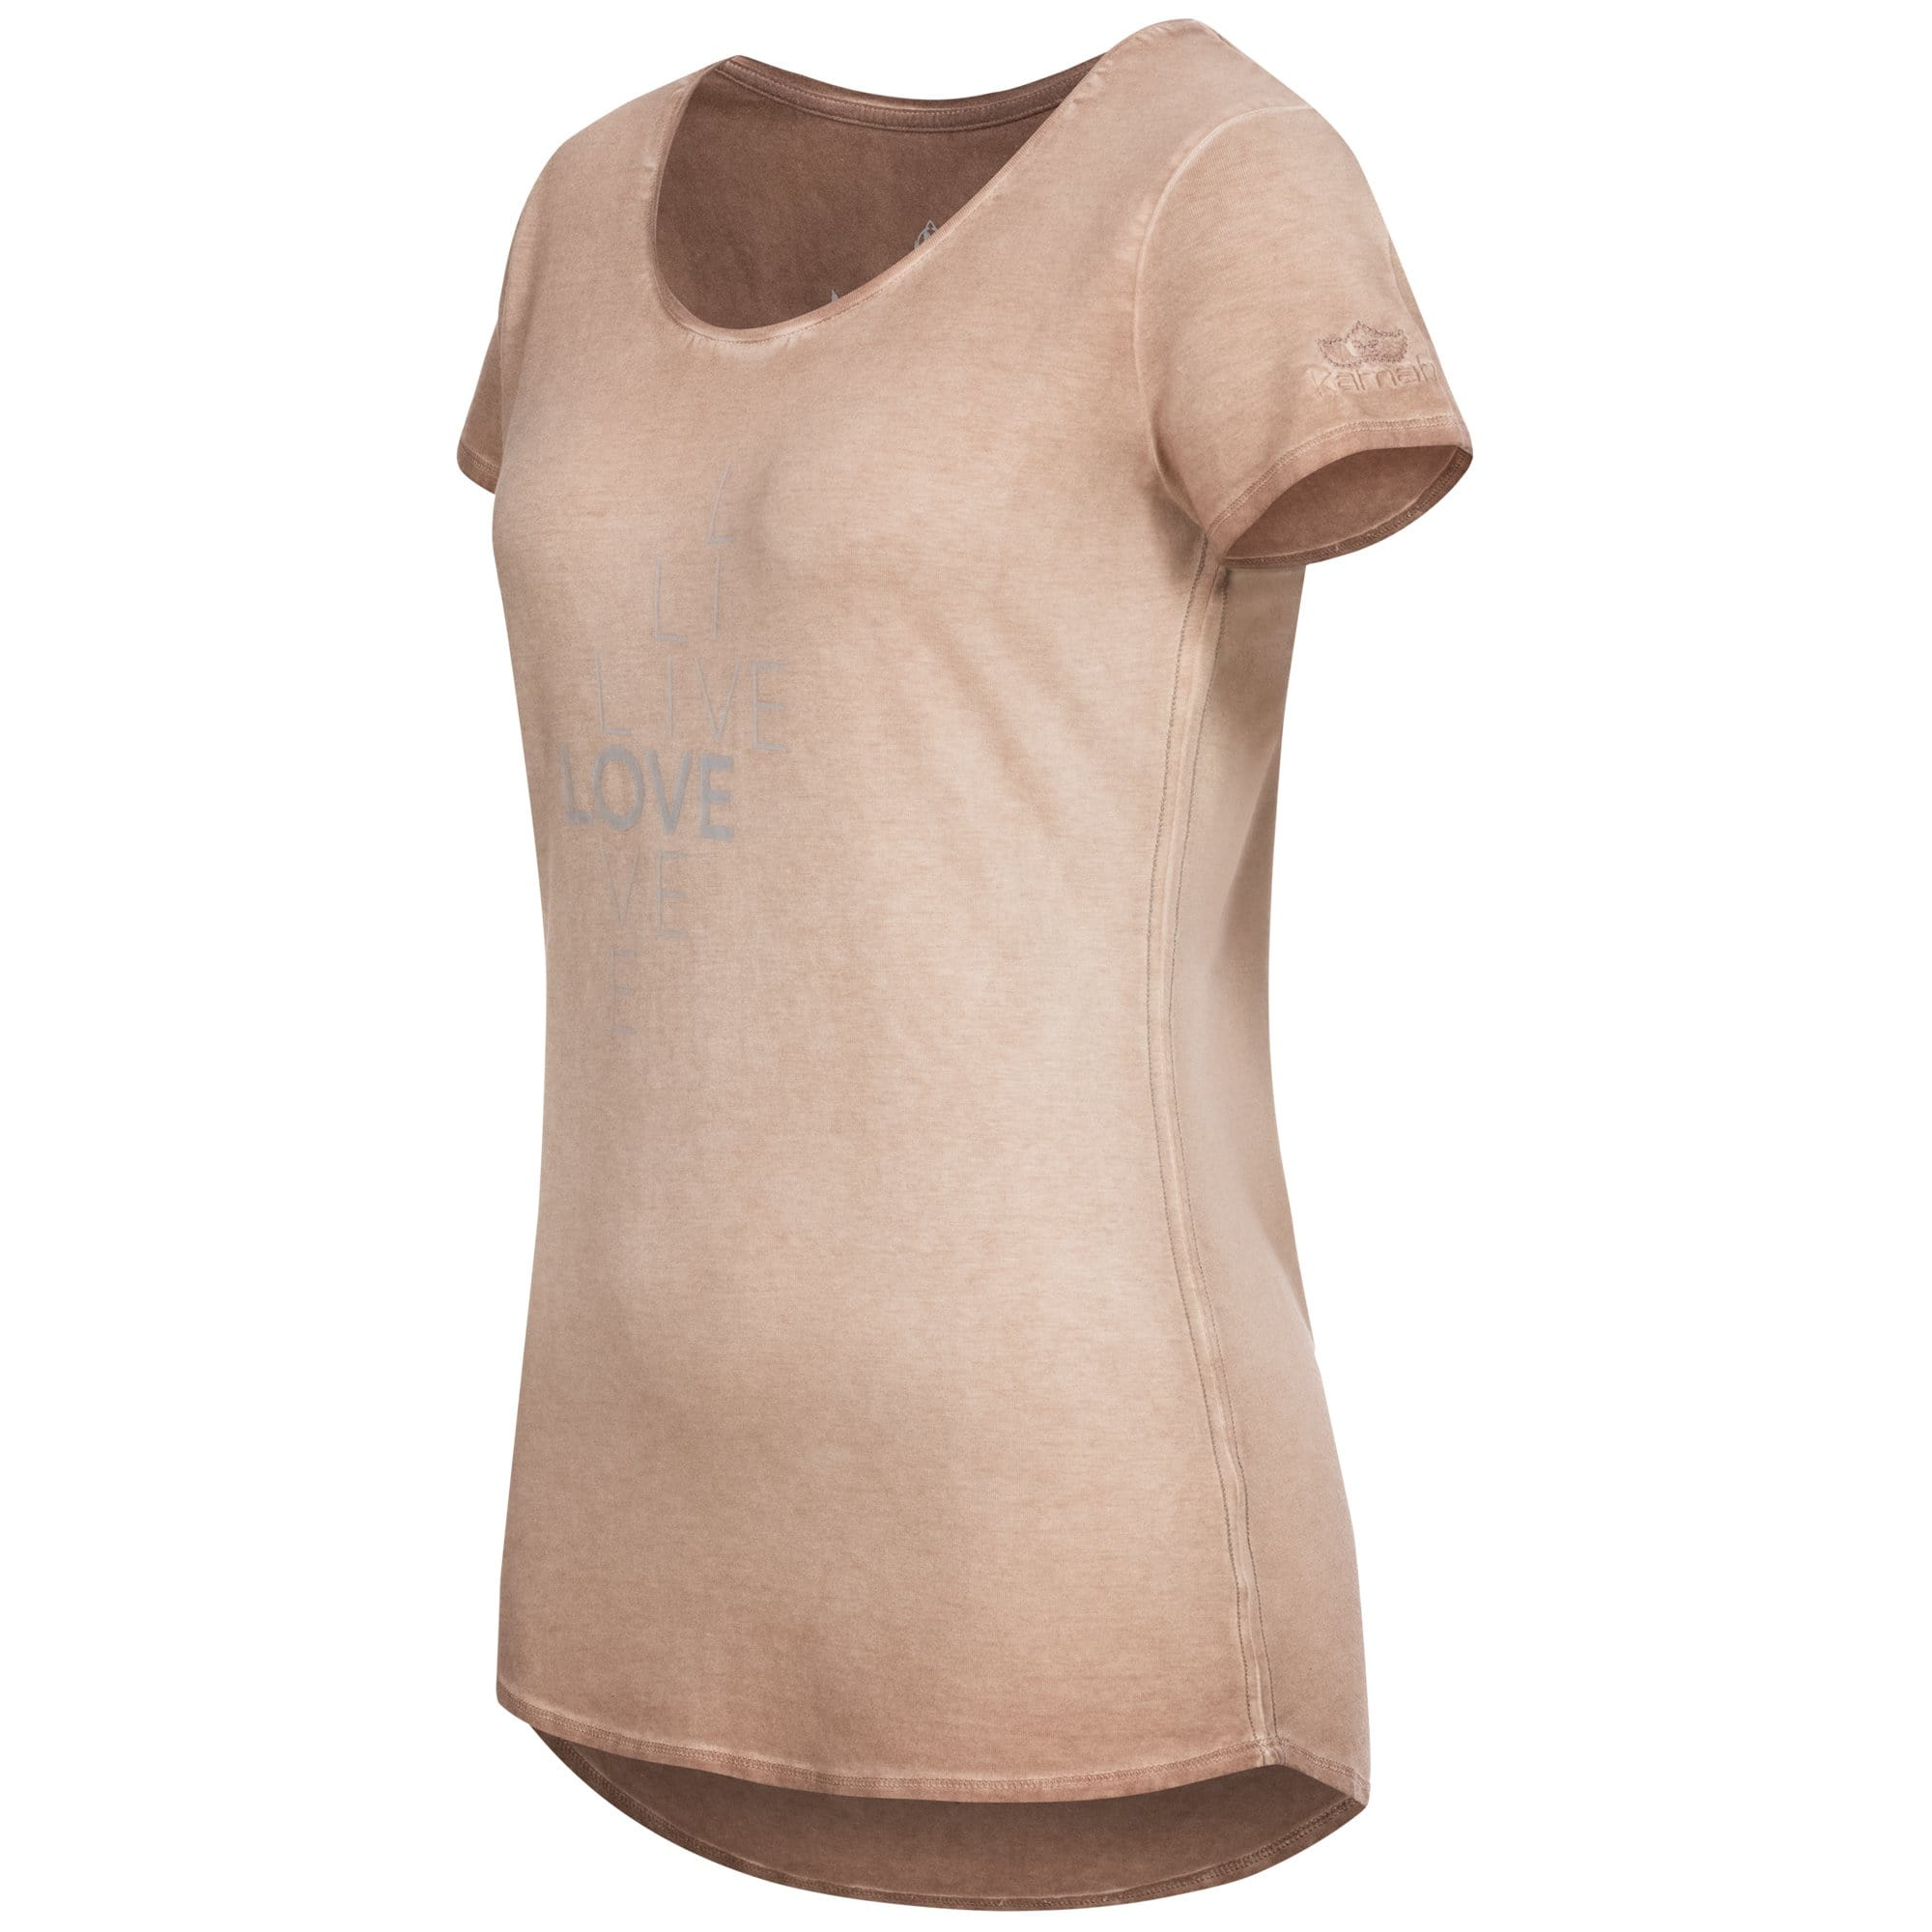 "Yoga-Shirt ""Waris"", nougat - Weiches Basic T-Shirt mit Motto-Print - Kamah Yoga and Style"